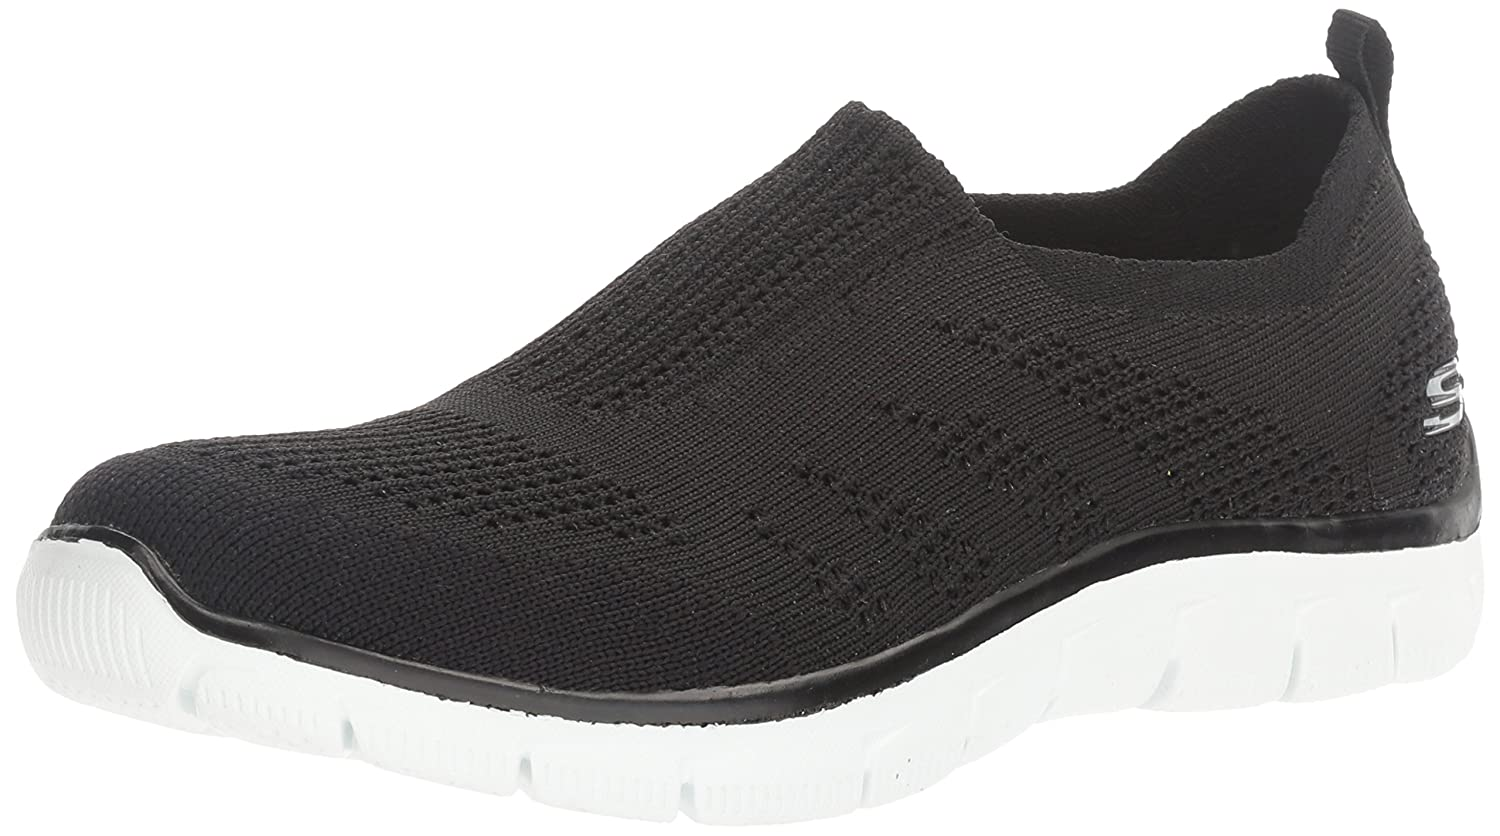 Skechers Empire-Inside Look, Zapatillas para Mujer 41 EU|Black